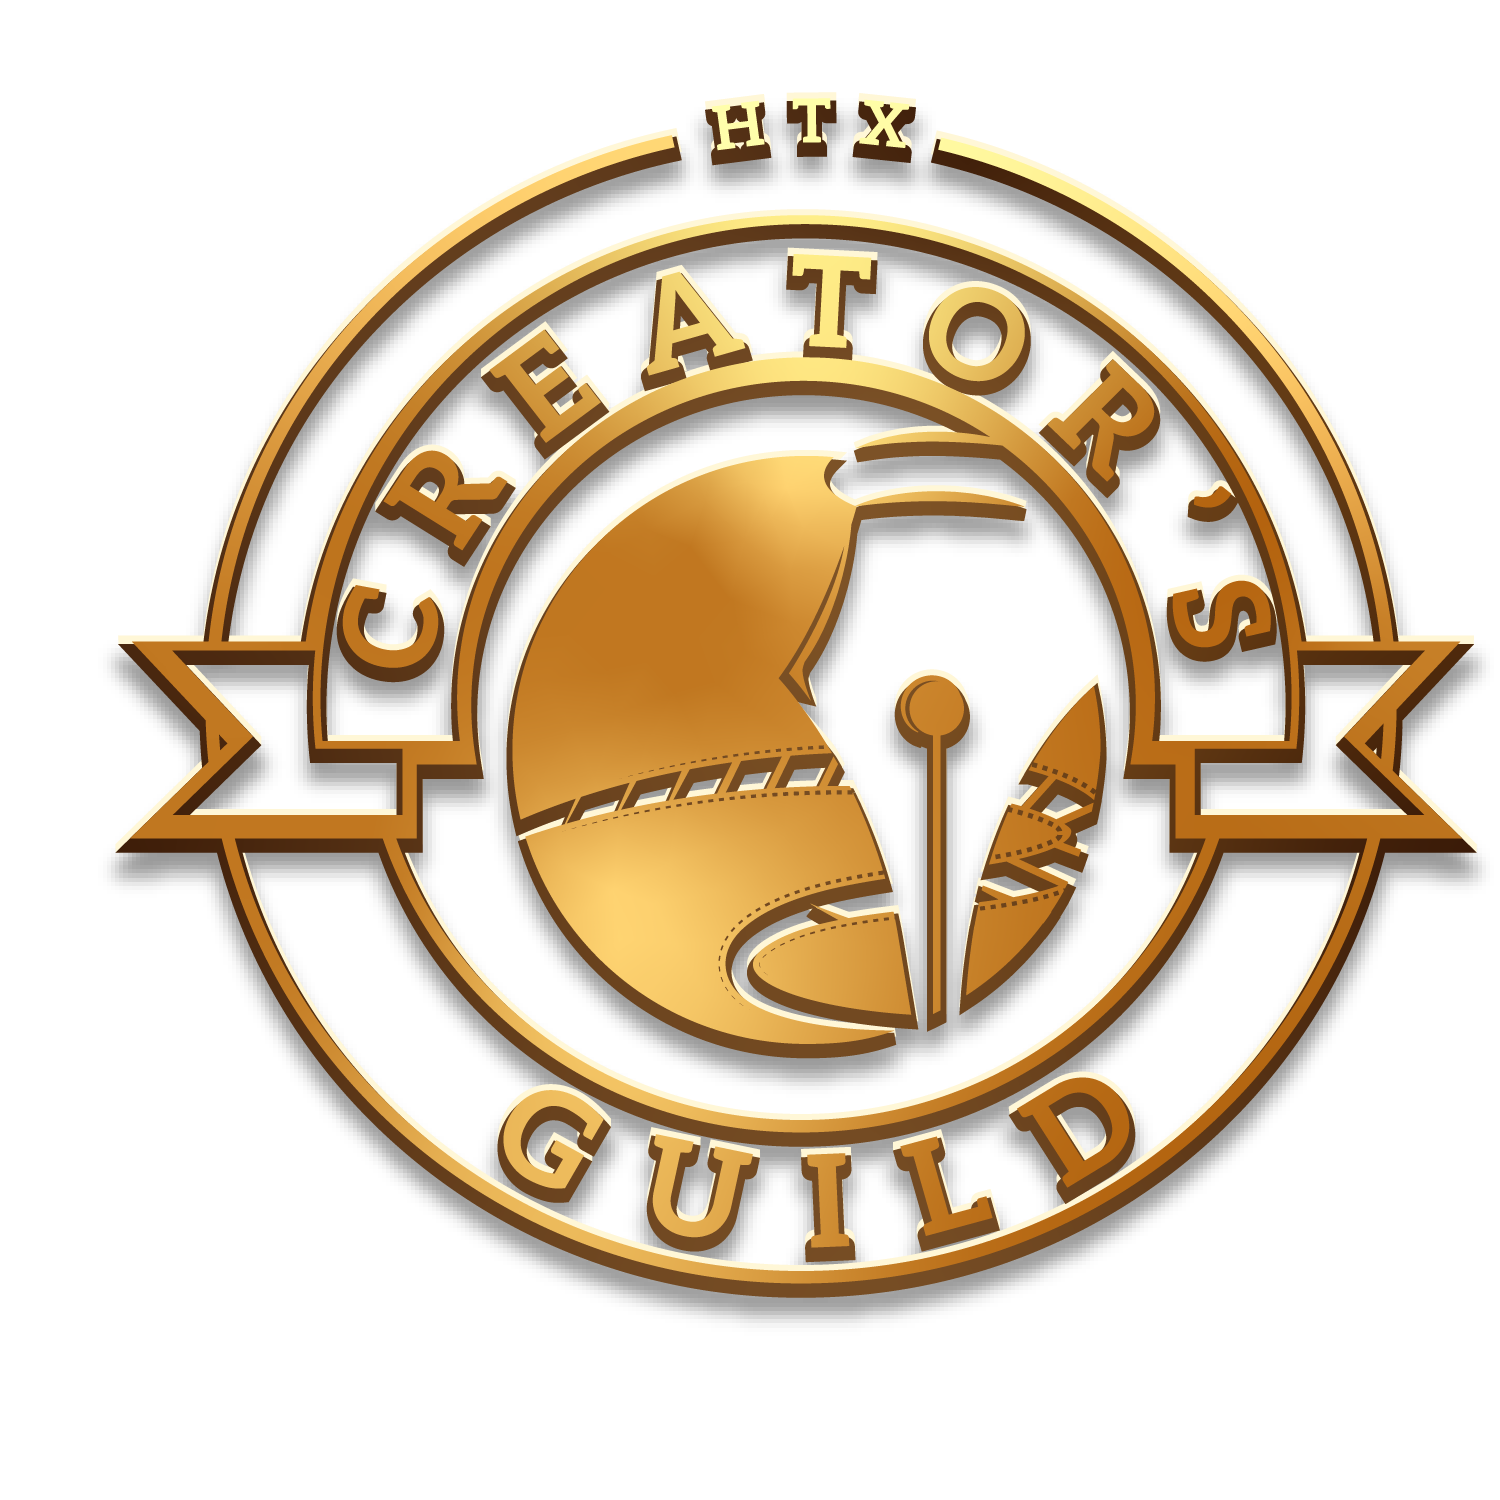 The Guild HTX